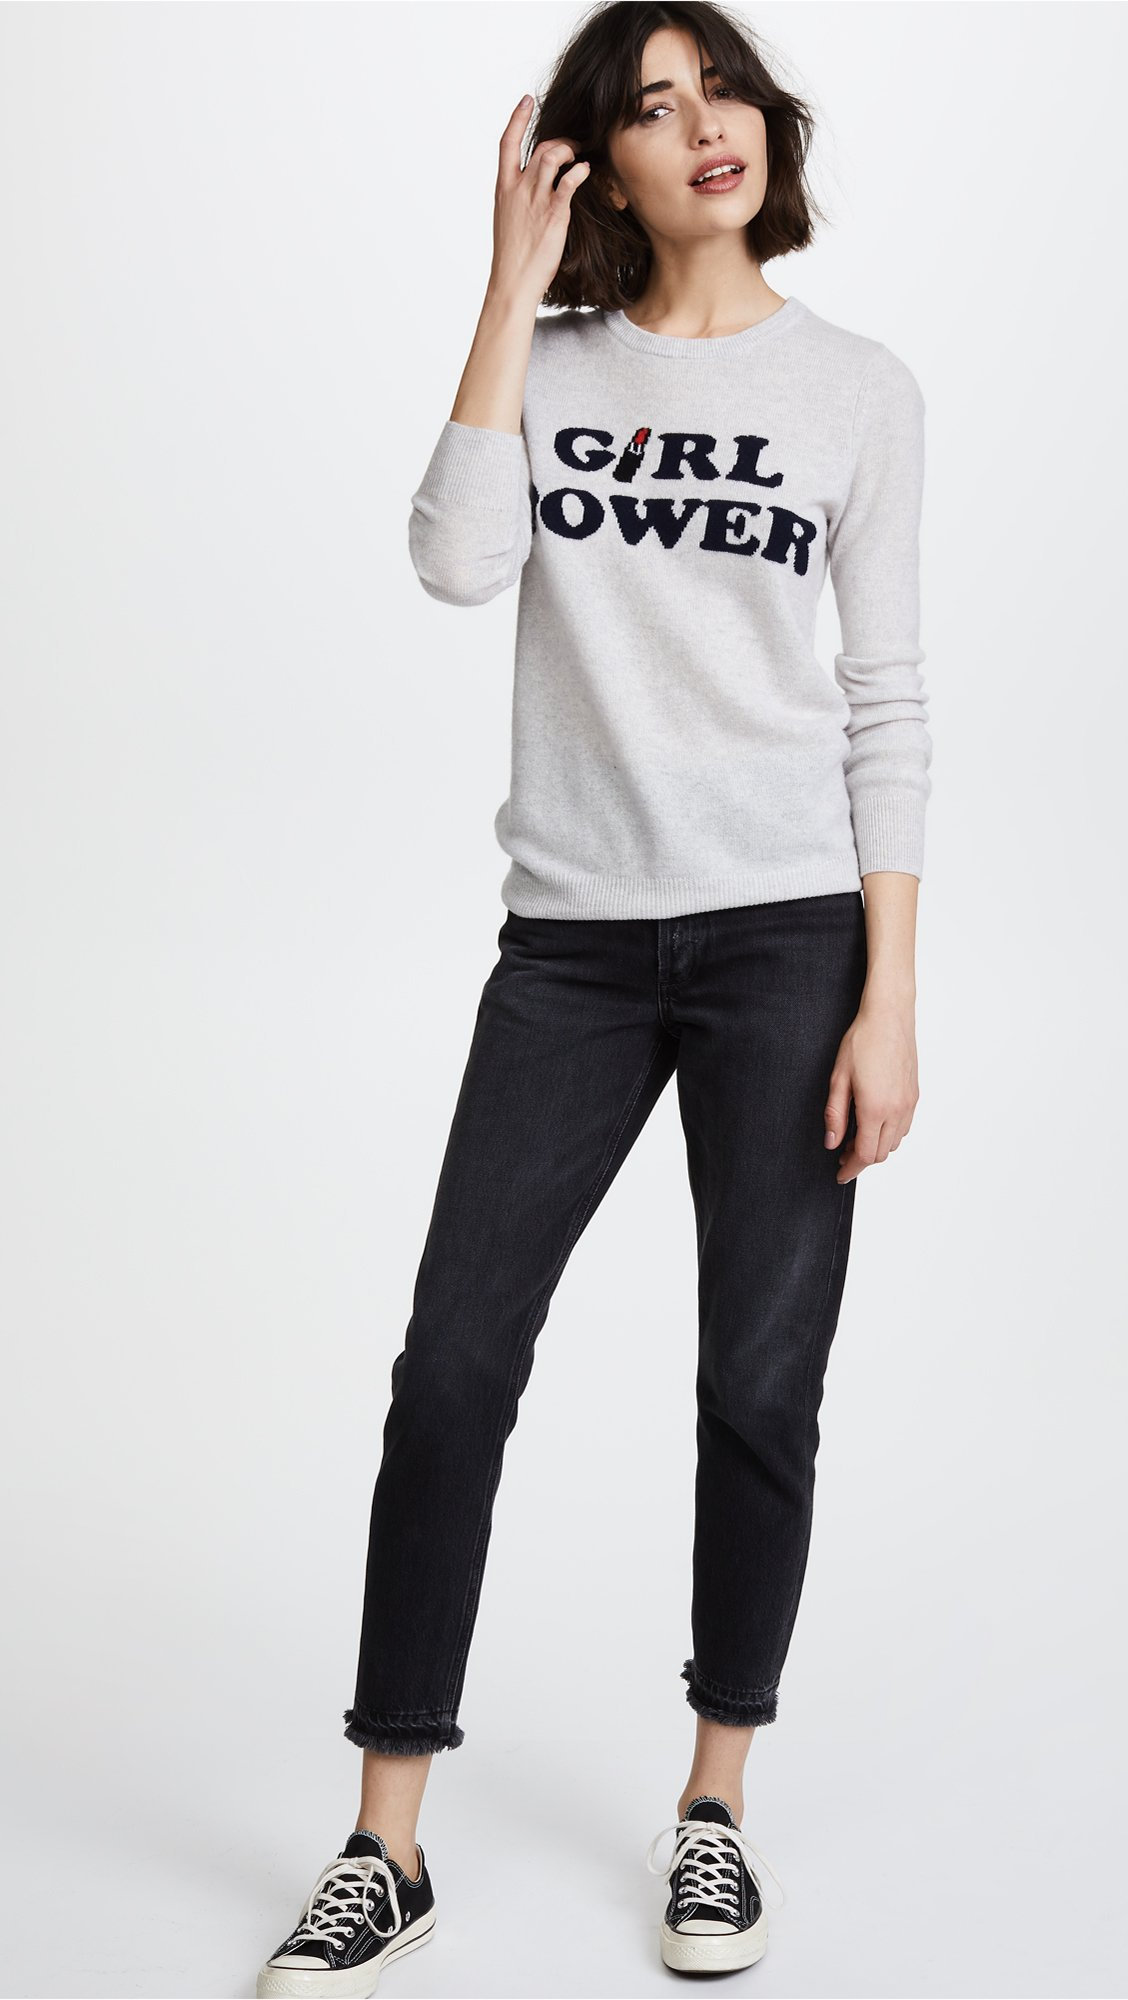 Autumn Cashmere Women's Intarsia Cashmere Sweater, Sleet/Navy Combo, X-Small by Autumn Cashmere (Image #5)